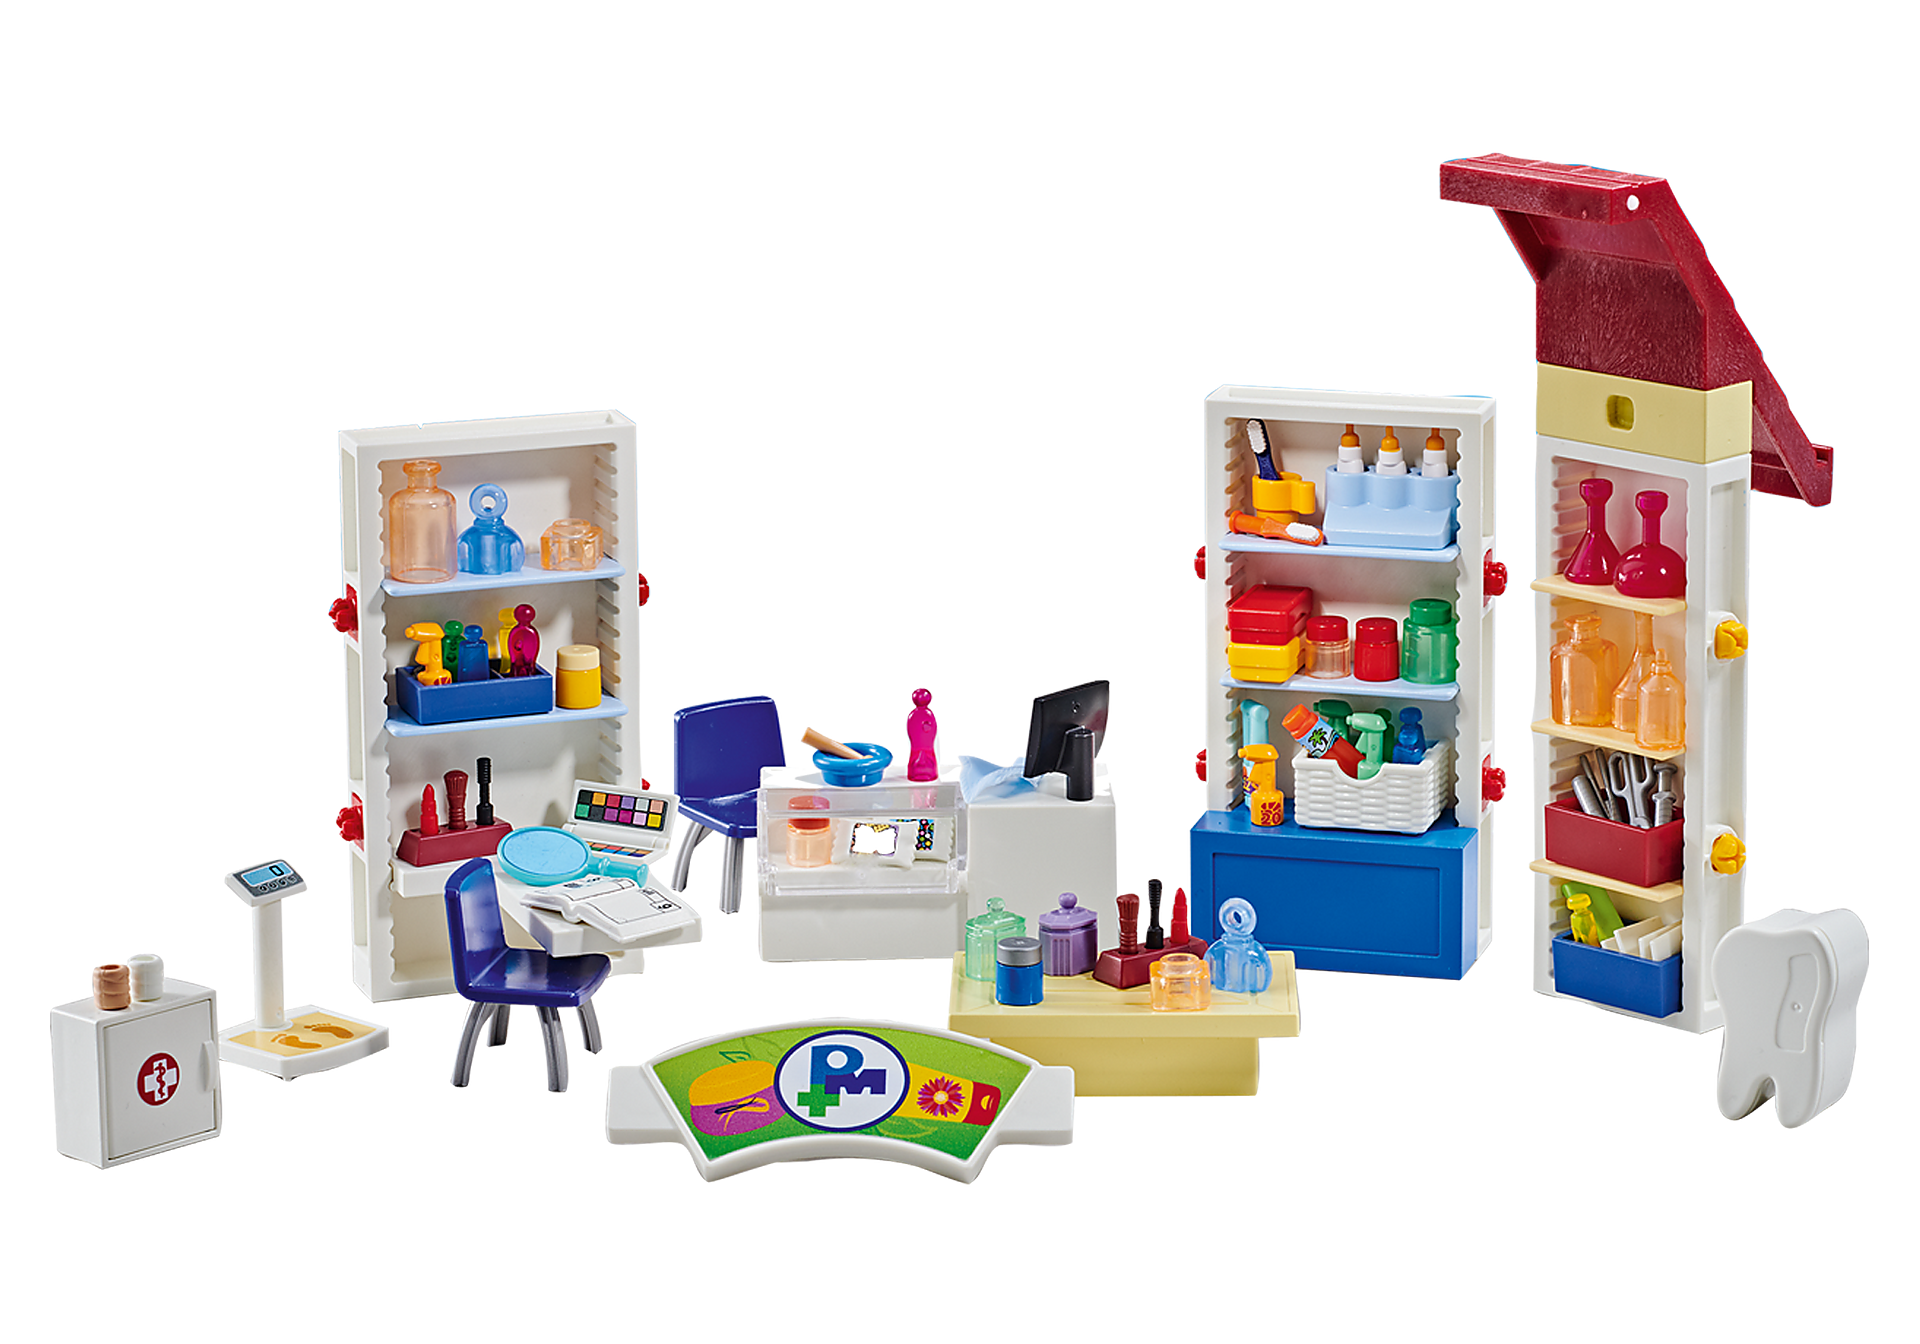 http://media.playmobil.com/i/playmobil/9808_product_detail/Apotheke